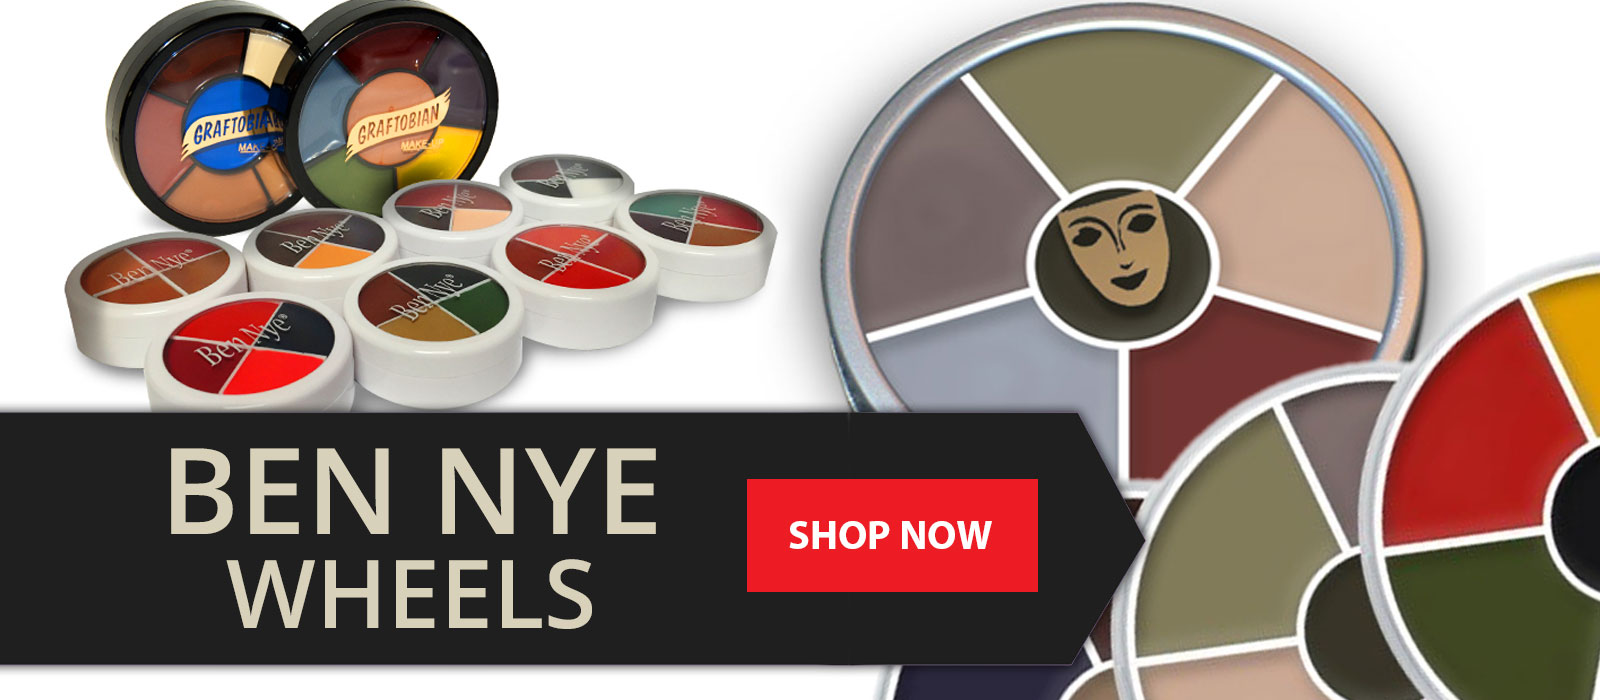 Shop for Ben Nye Makeup Wheels